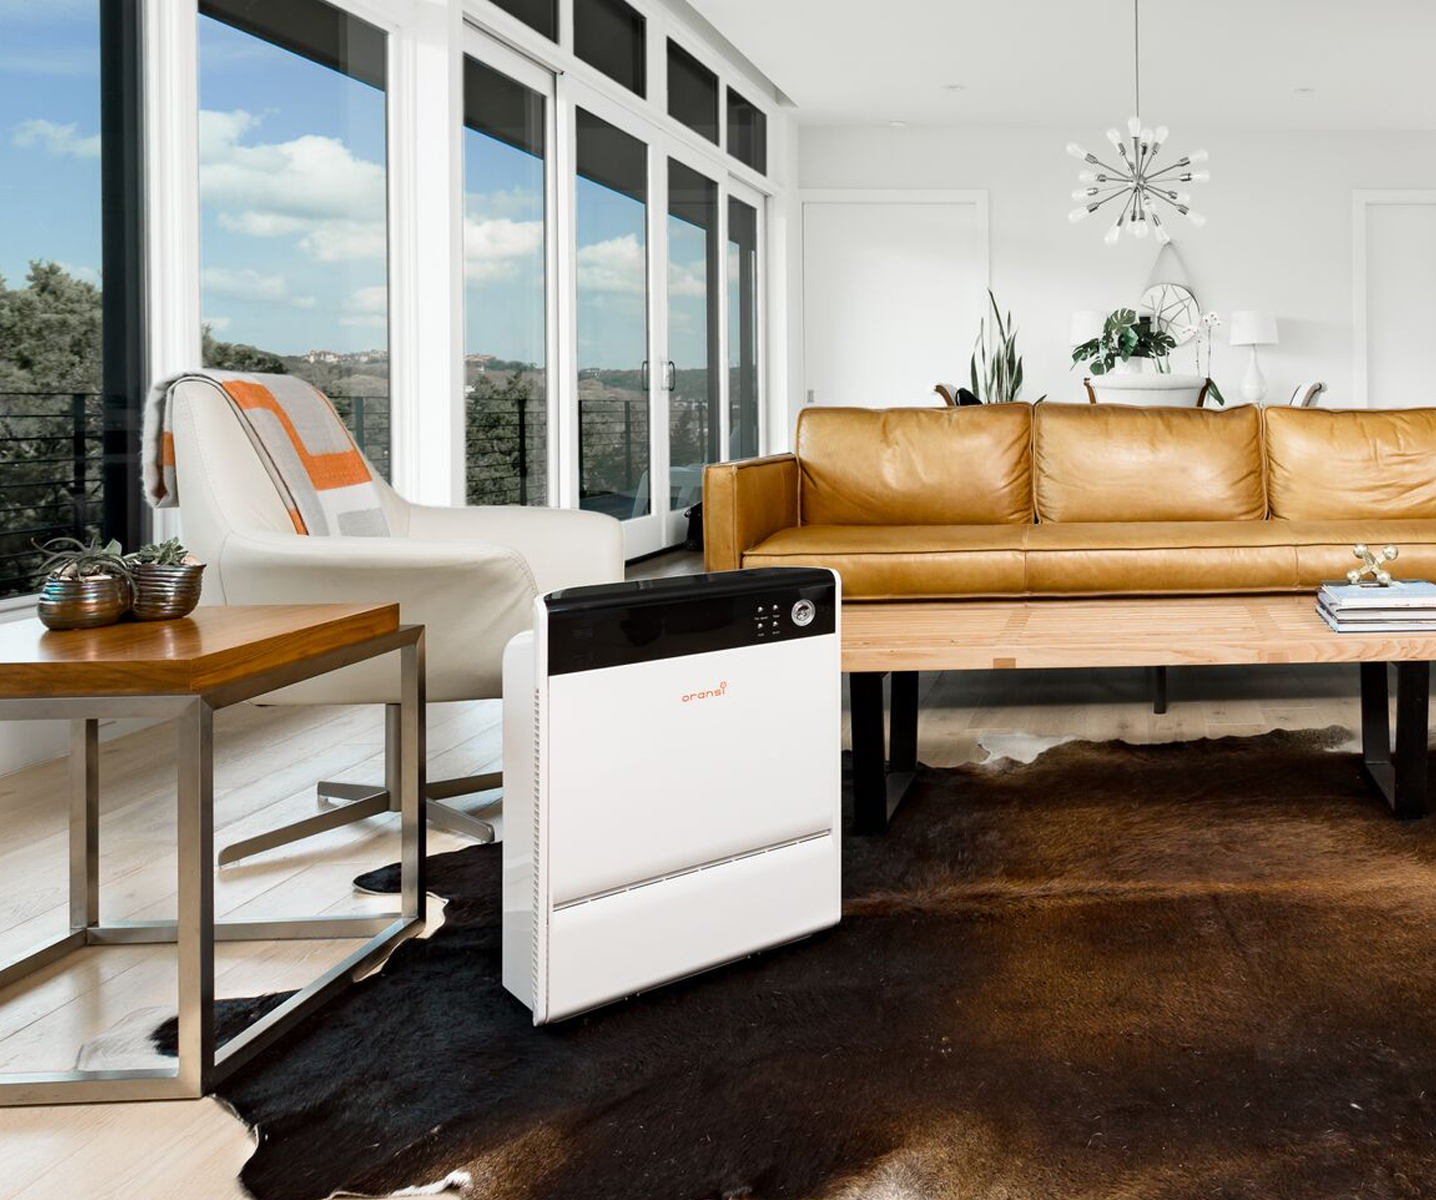 Max air purifier in a living room